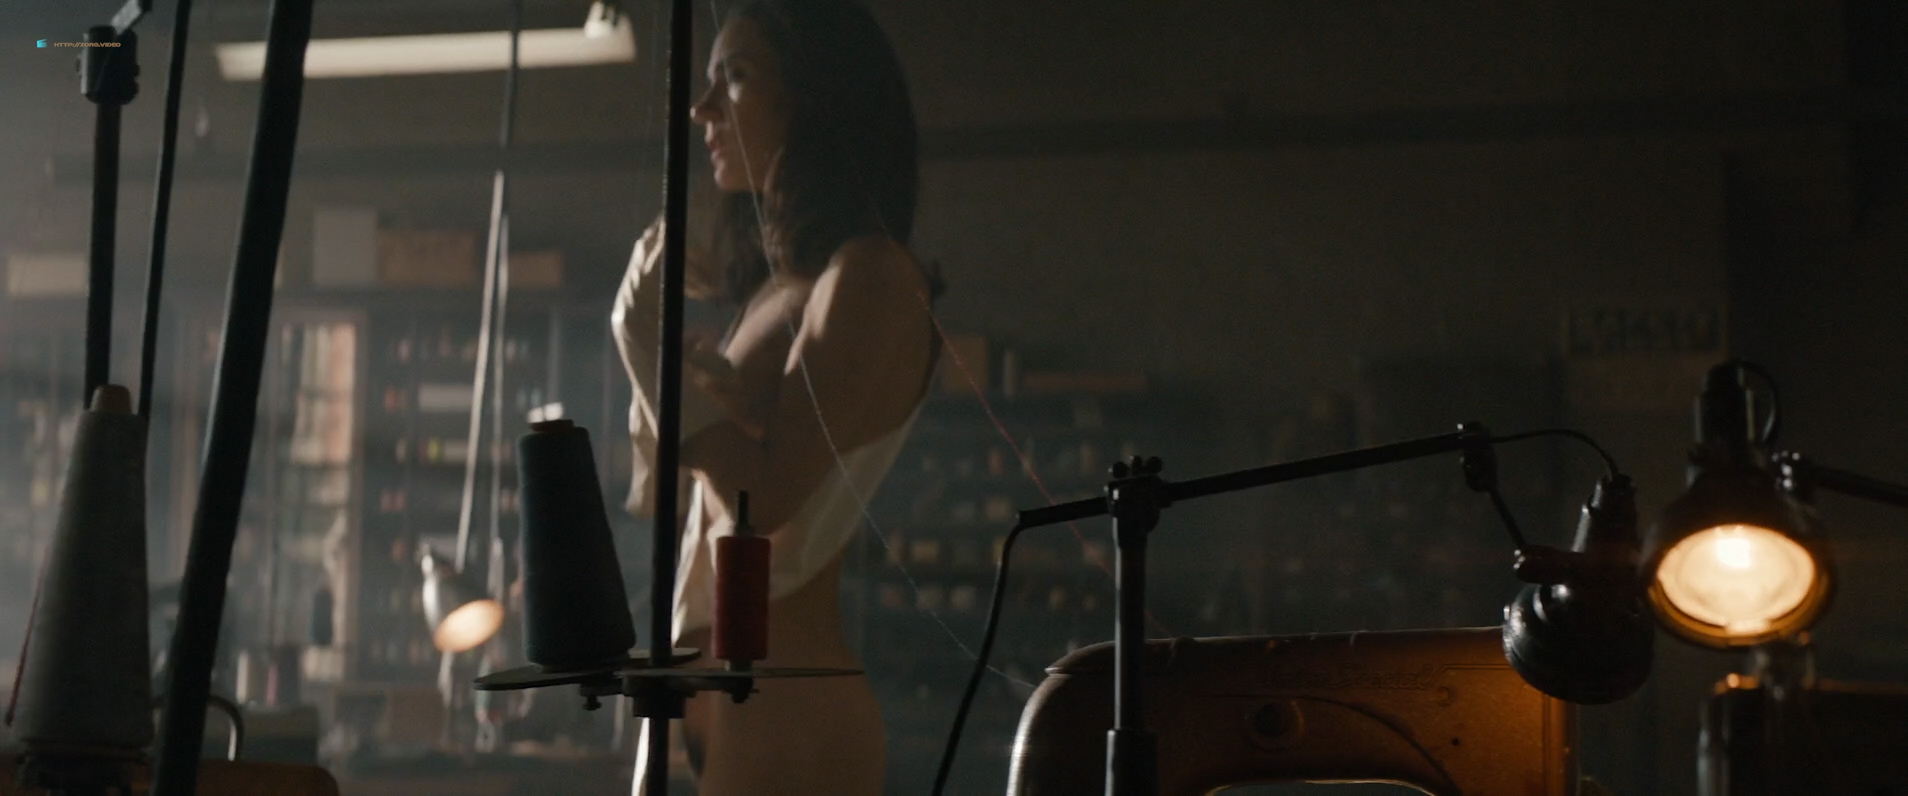 Jennifer Connelly nude brief bush and side boob - American Pastoral (2016) HD 1080p WebDL (3)